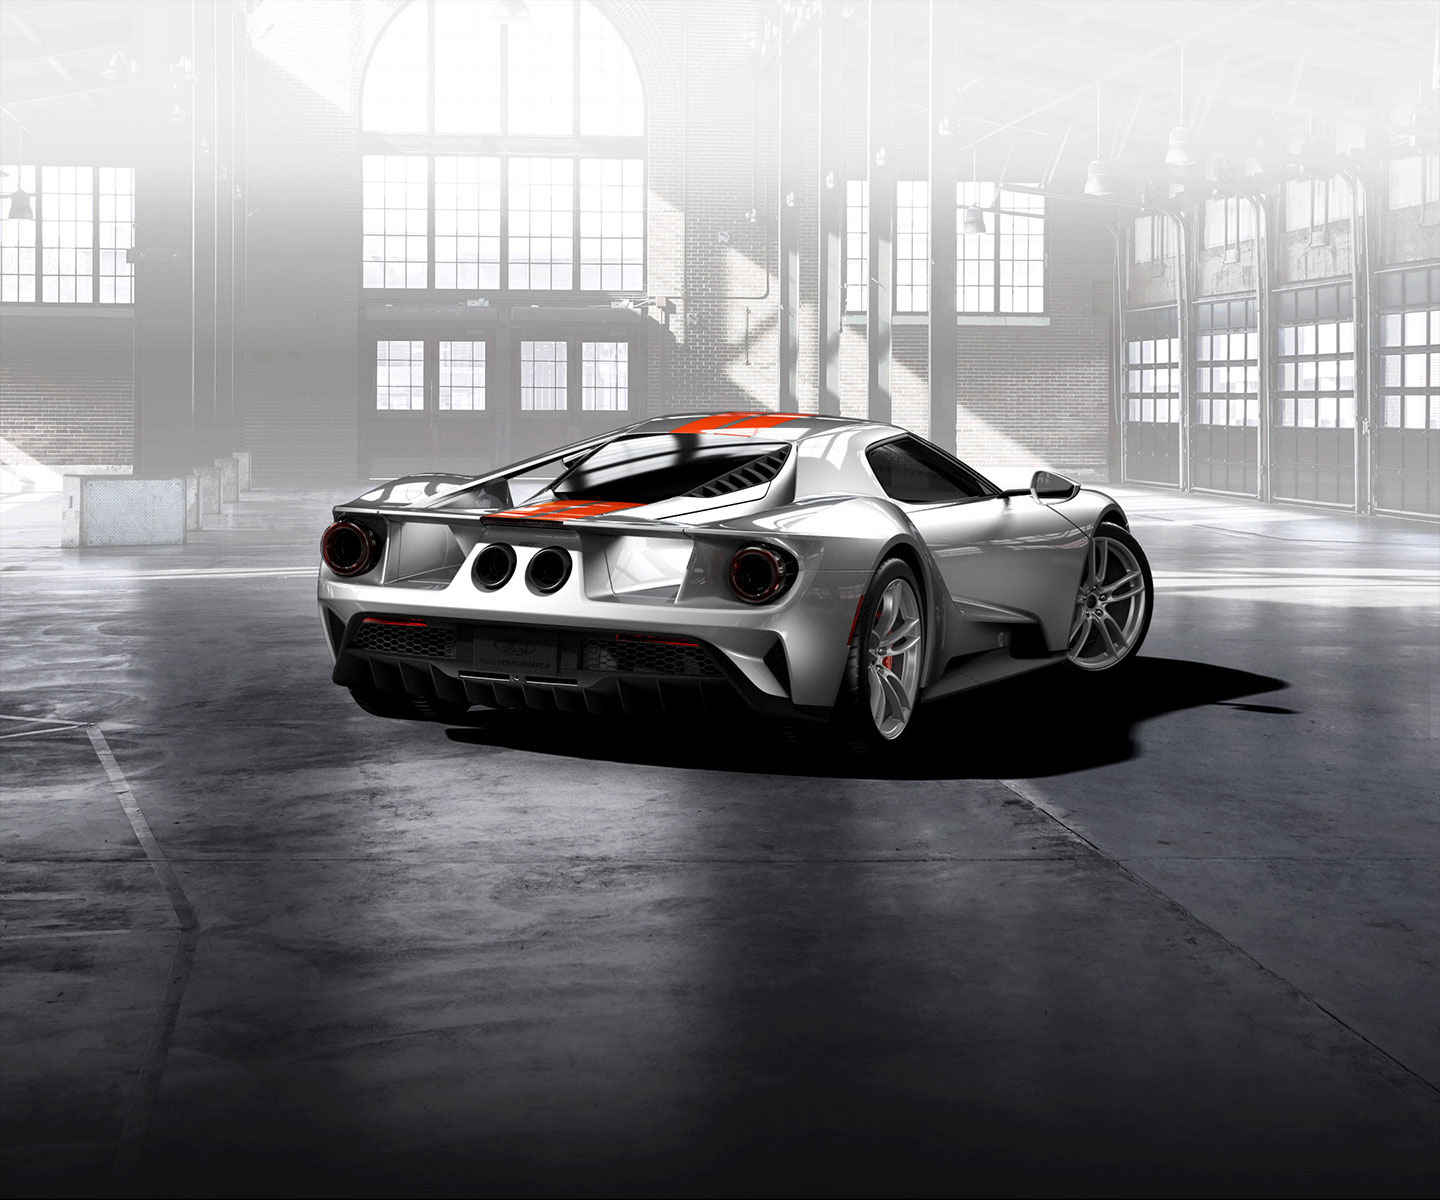 One Intriguing Part About The Configurator Is That It Teases Two Special Edition Variants Of The Ford Gt That Are Coming Soon